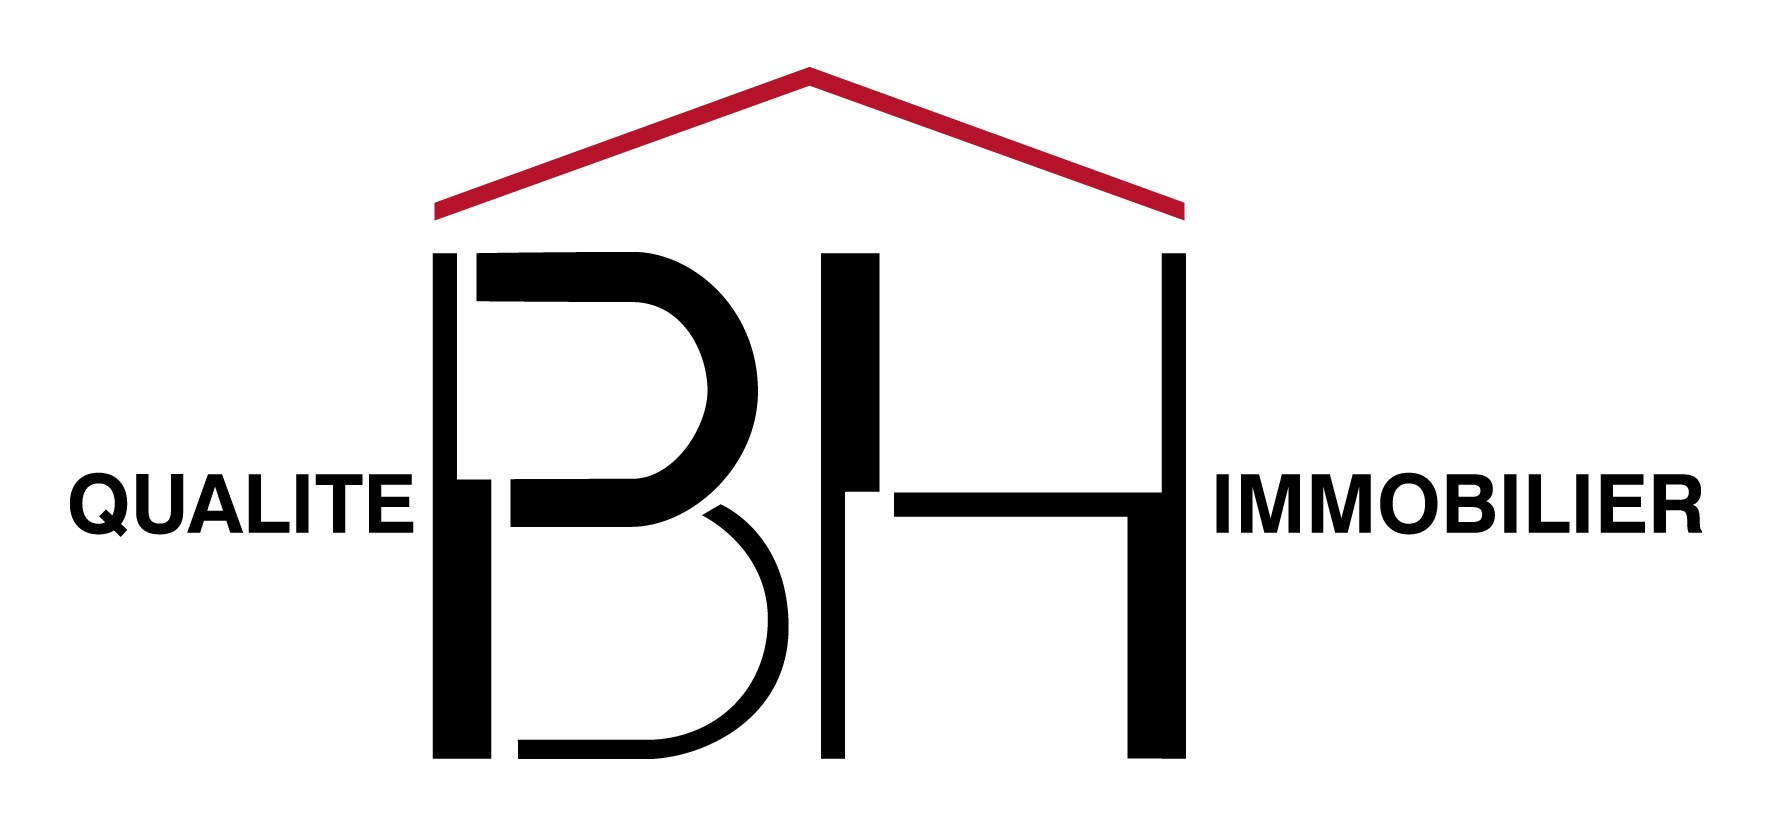 Qualite bh immobilier agence immobili re paris for Agence immobiliere 75017